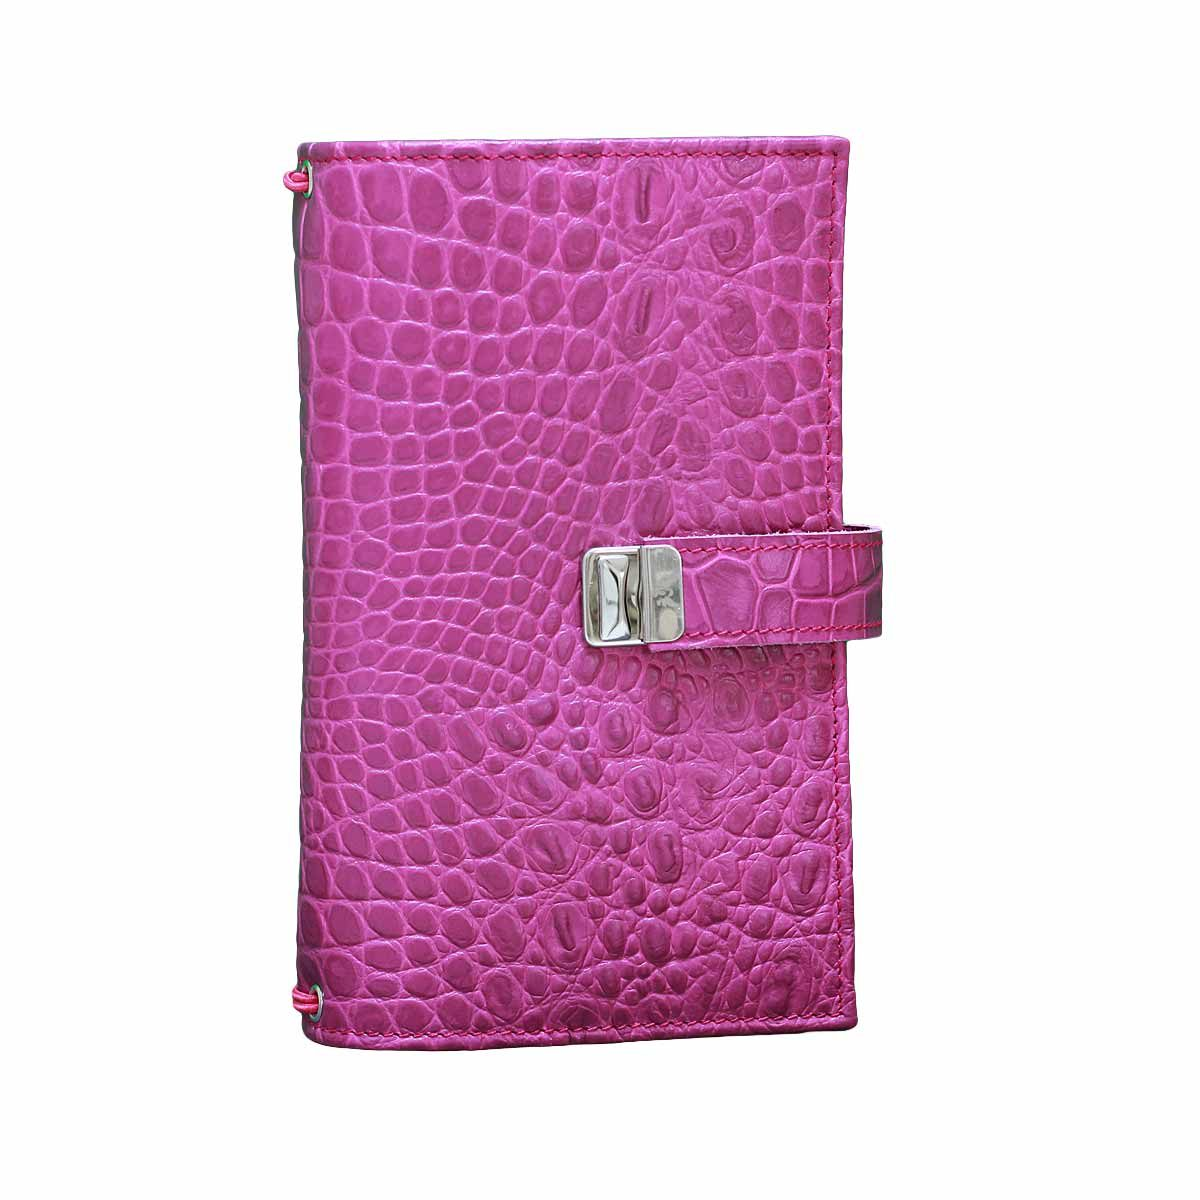 travelers notebook regular pink kroko